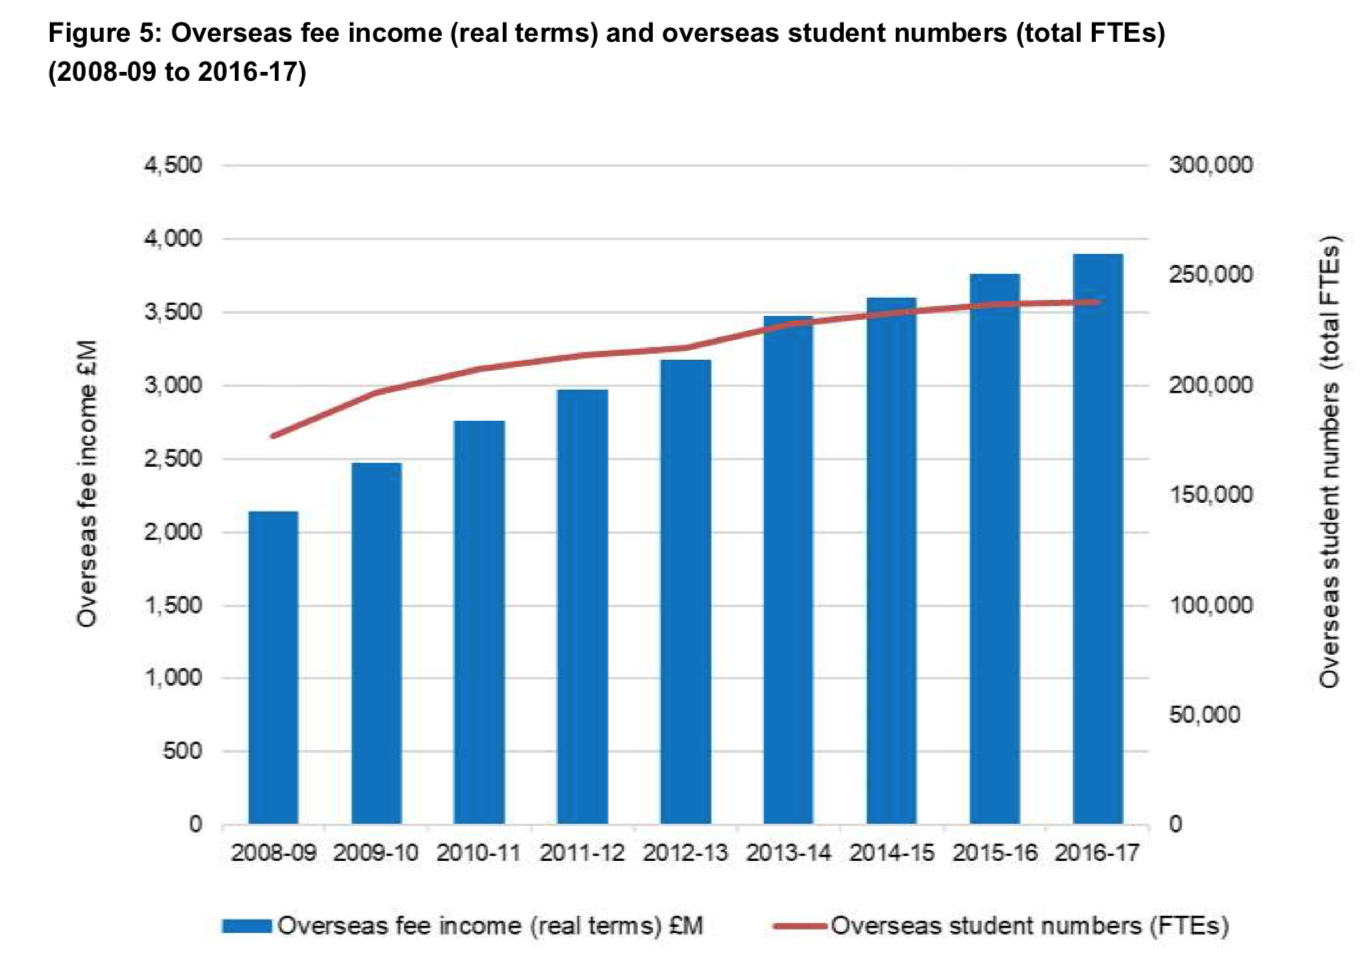 Overseas fee income and student numbers for English universities